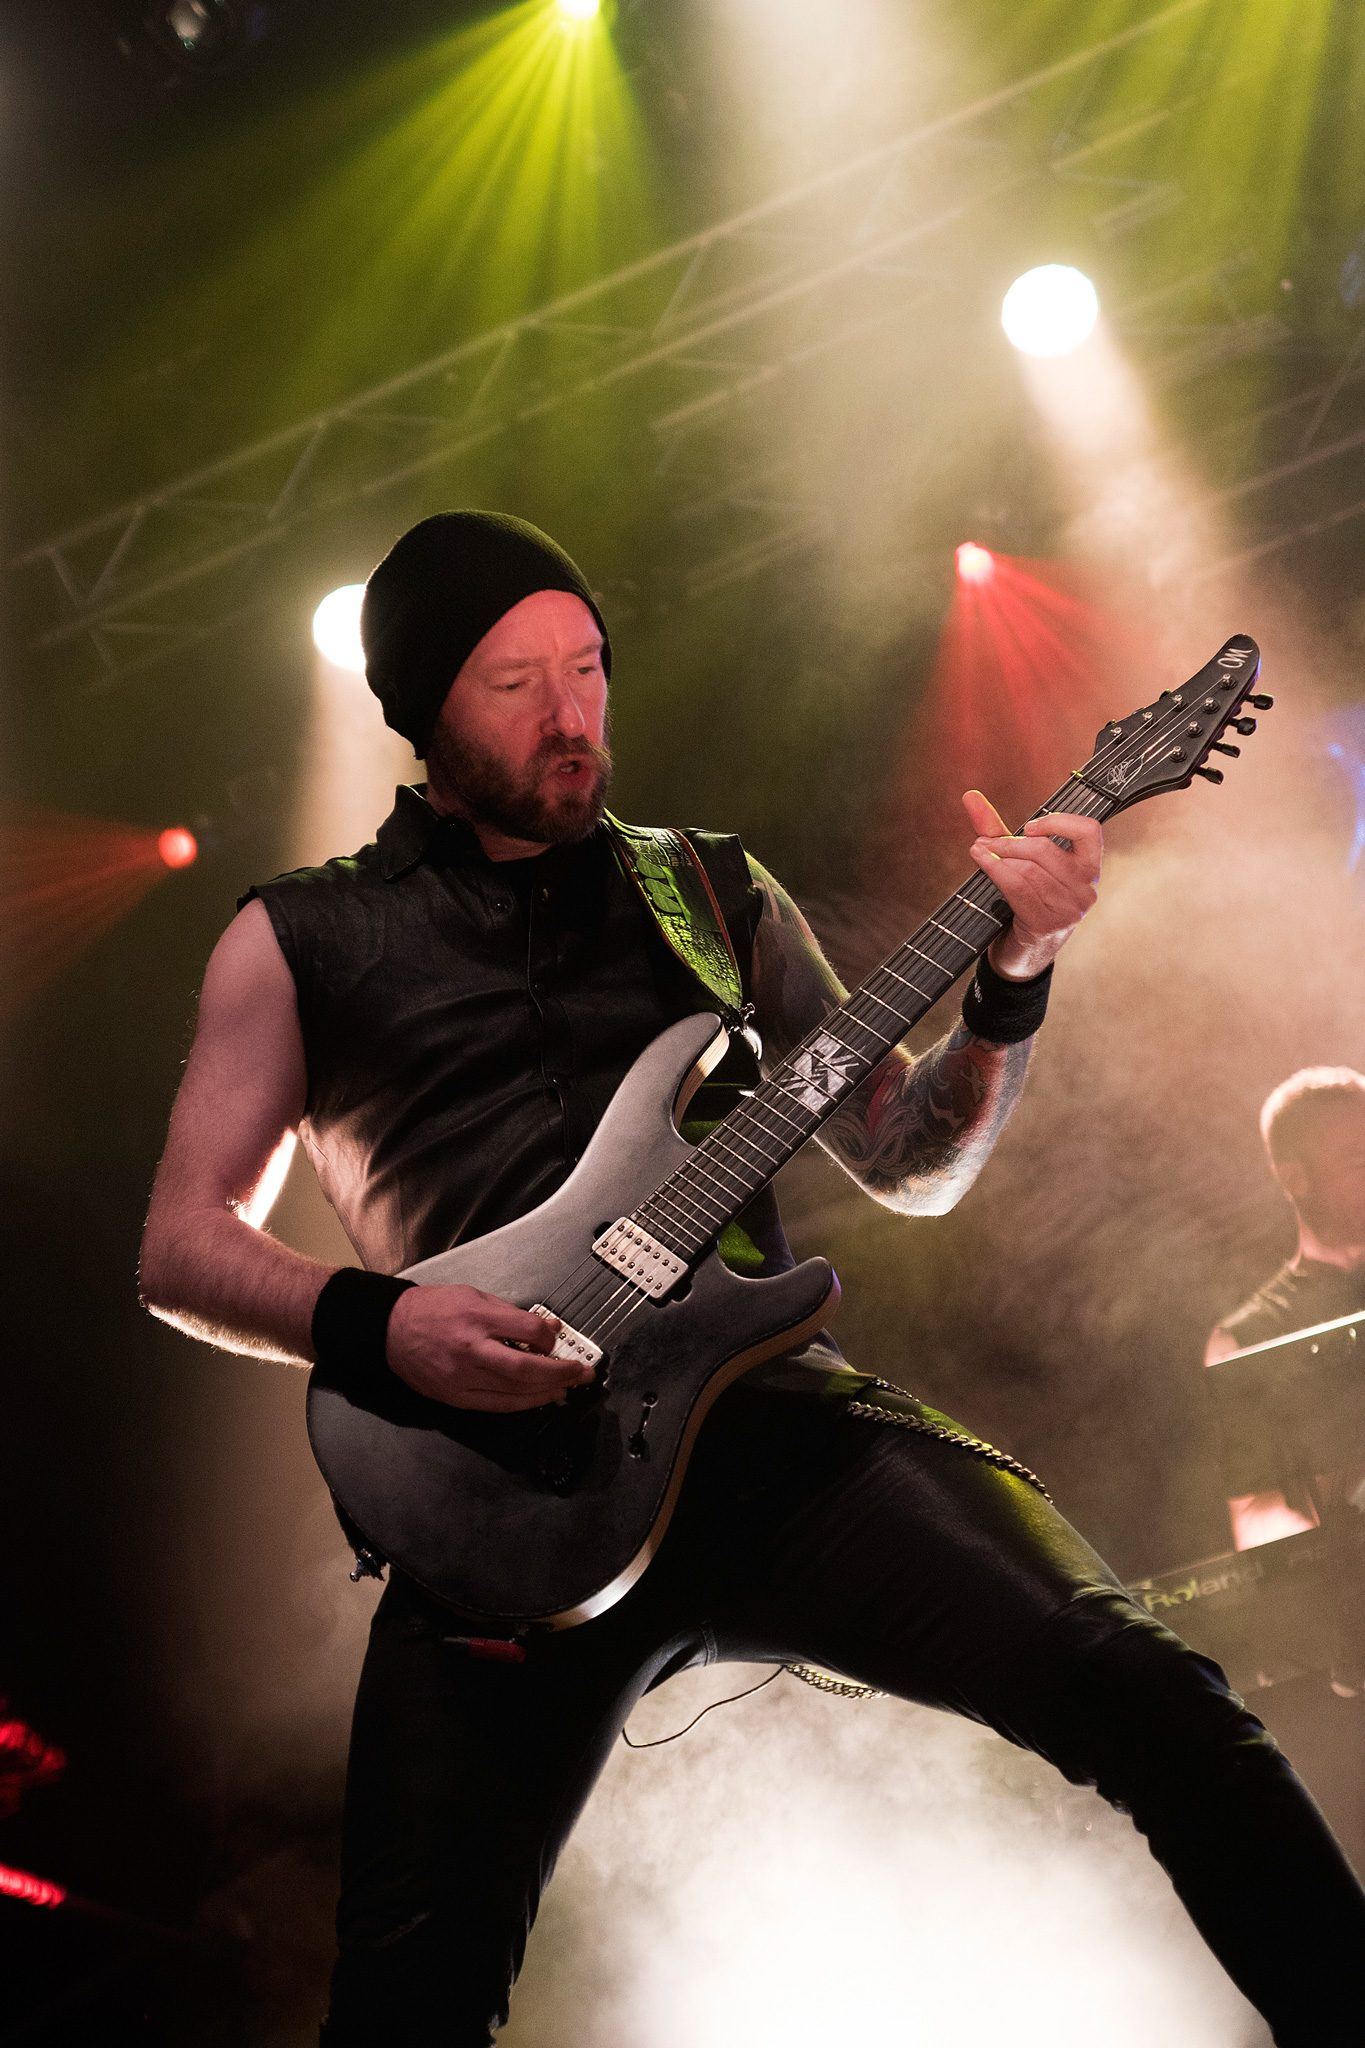 Ruud Adrianus Jolie, Within Temptation